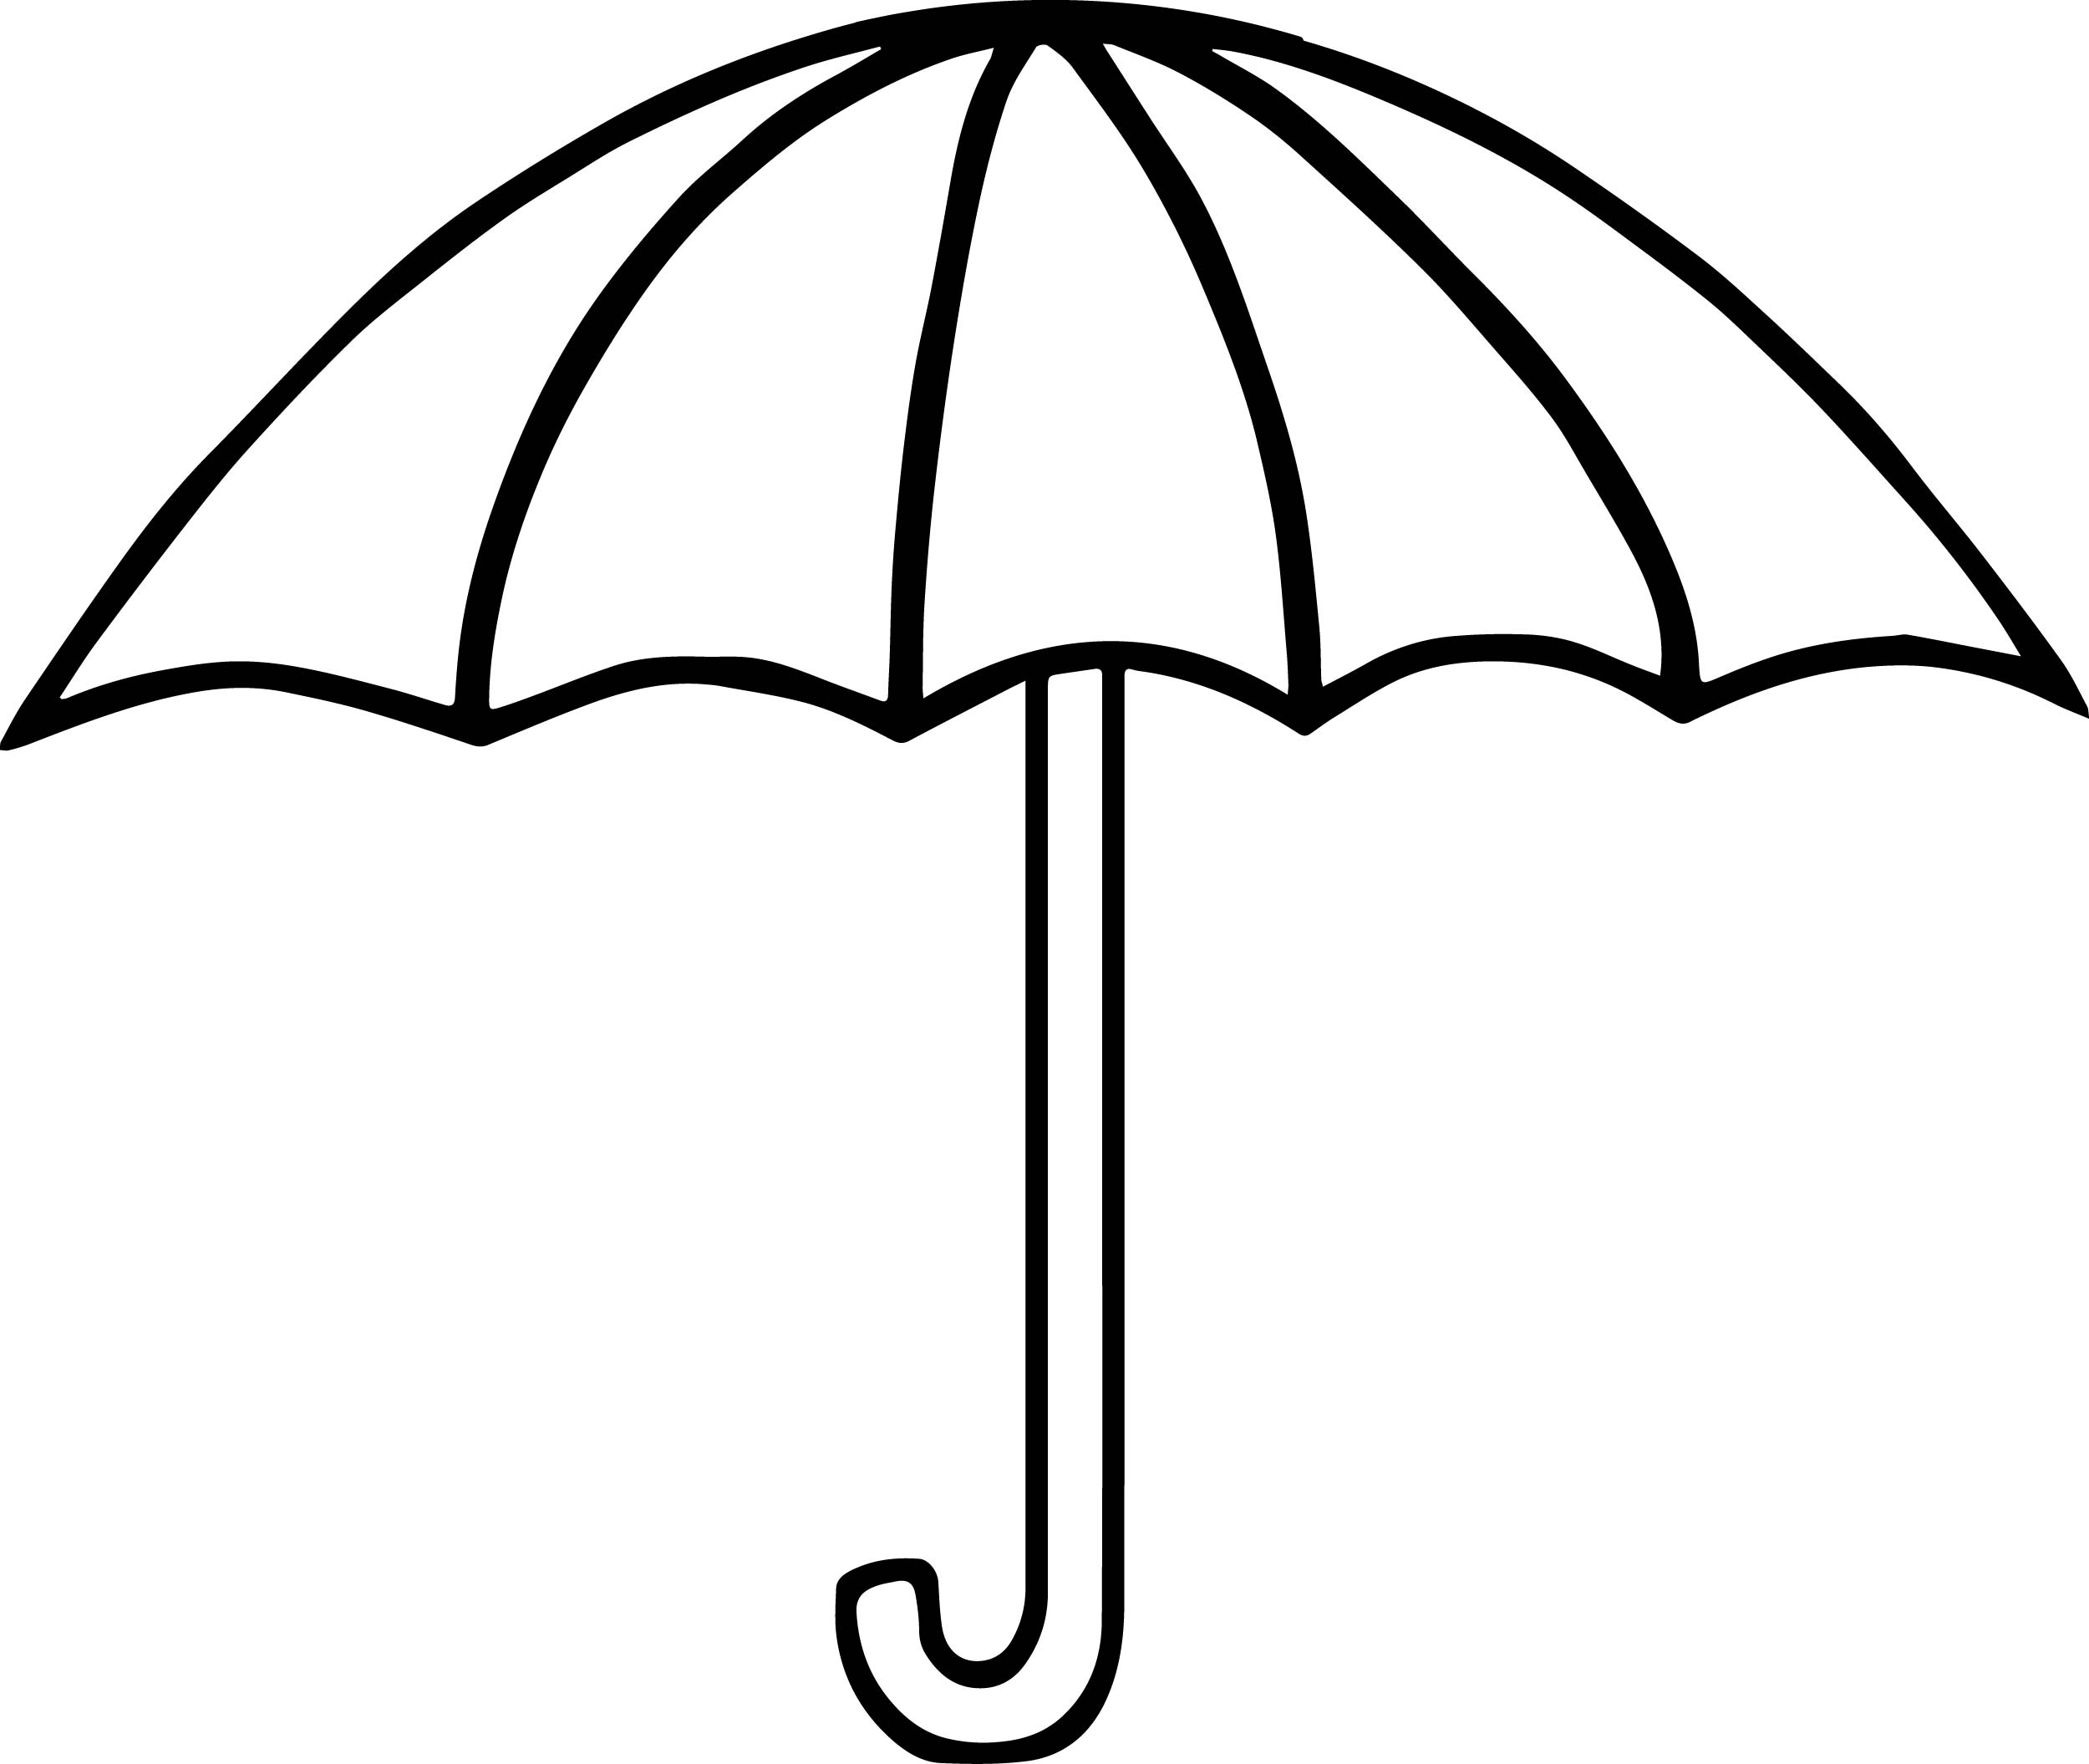 umbrella coloring page umbrella coloring pages for childrens printable for free coloring page umbrella